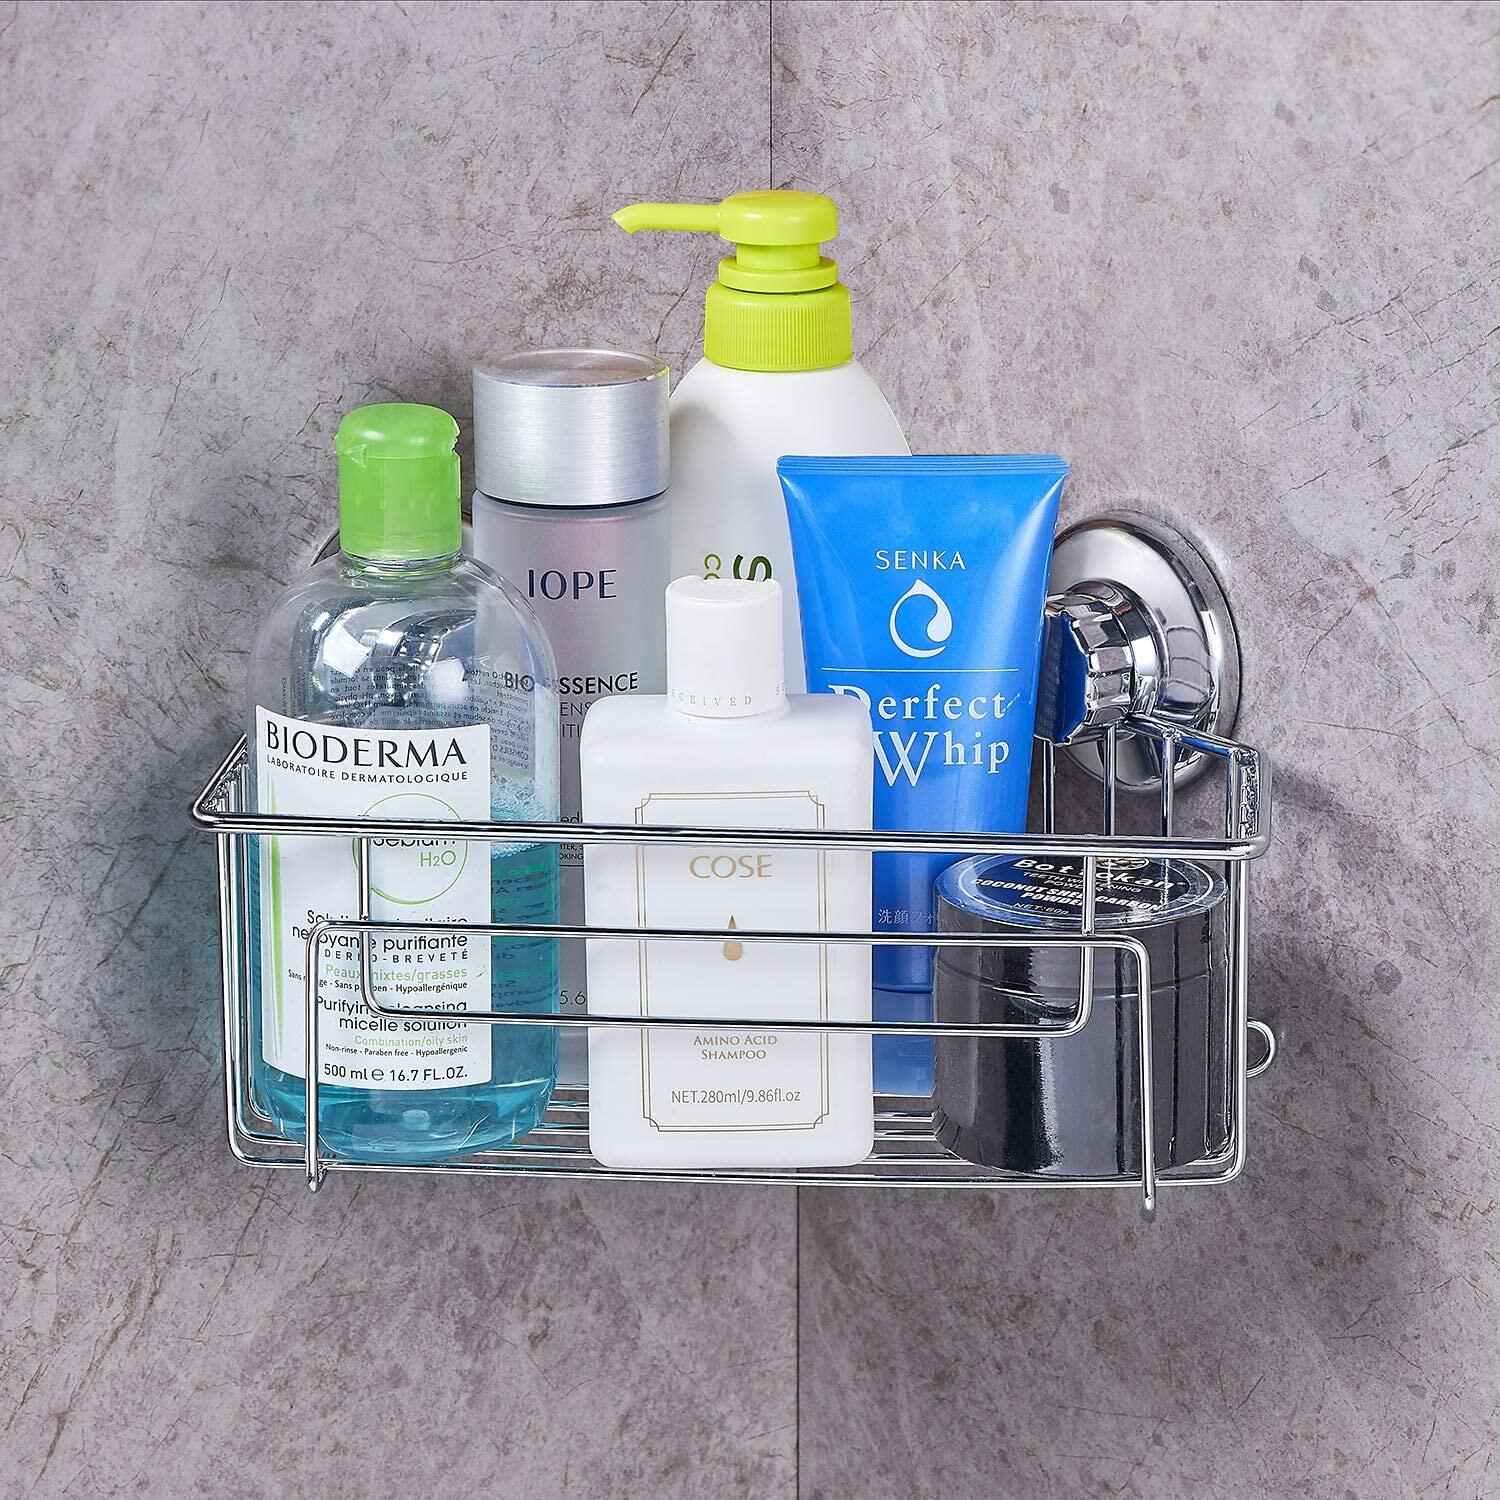 JS Shower Basket, Shower Caddy Corner Stainless Steel Shower Baskets Storage for Bathroom & Kitchen,Adhesive No Drilling JS Shower Basket, Stainless Steel Shower Basket at smart-join.com Shower Basket